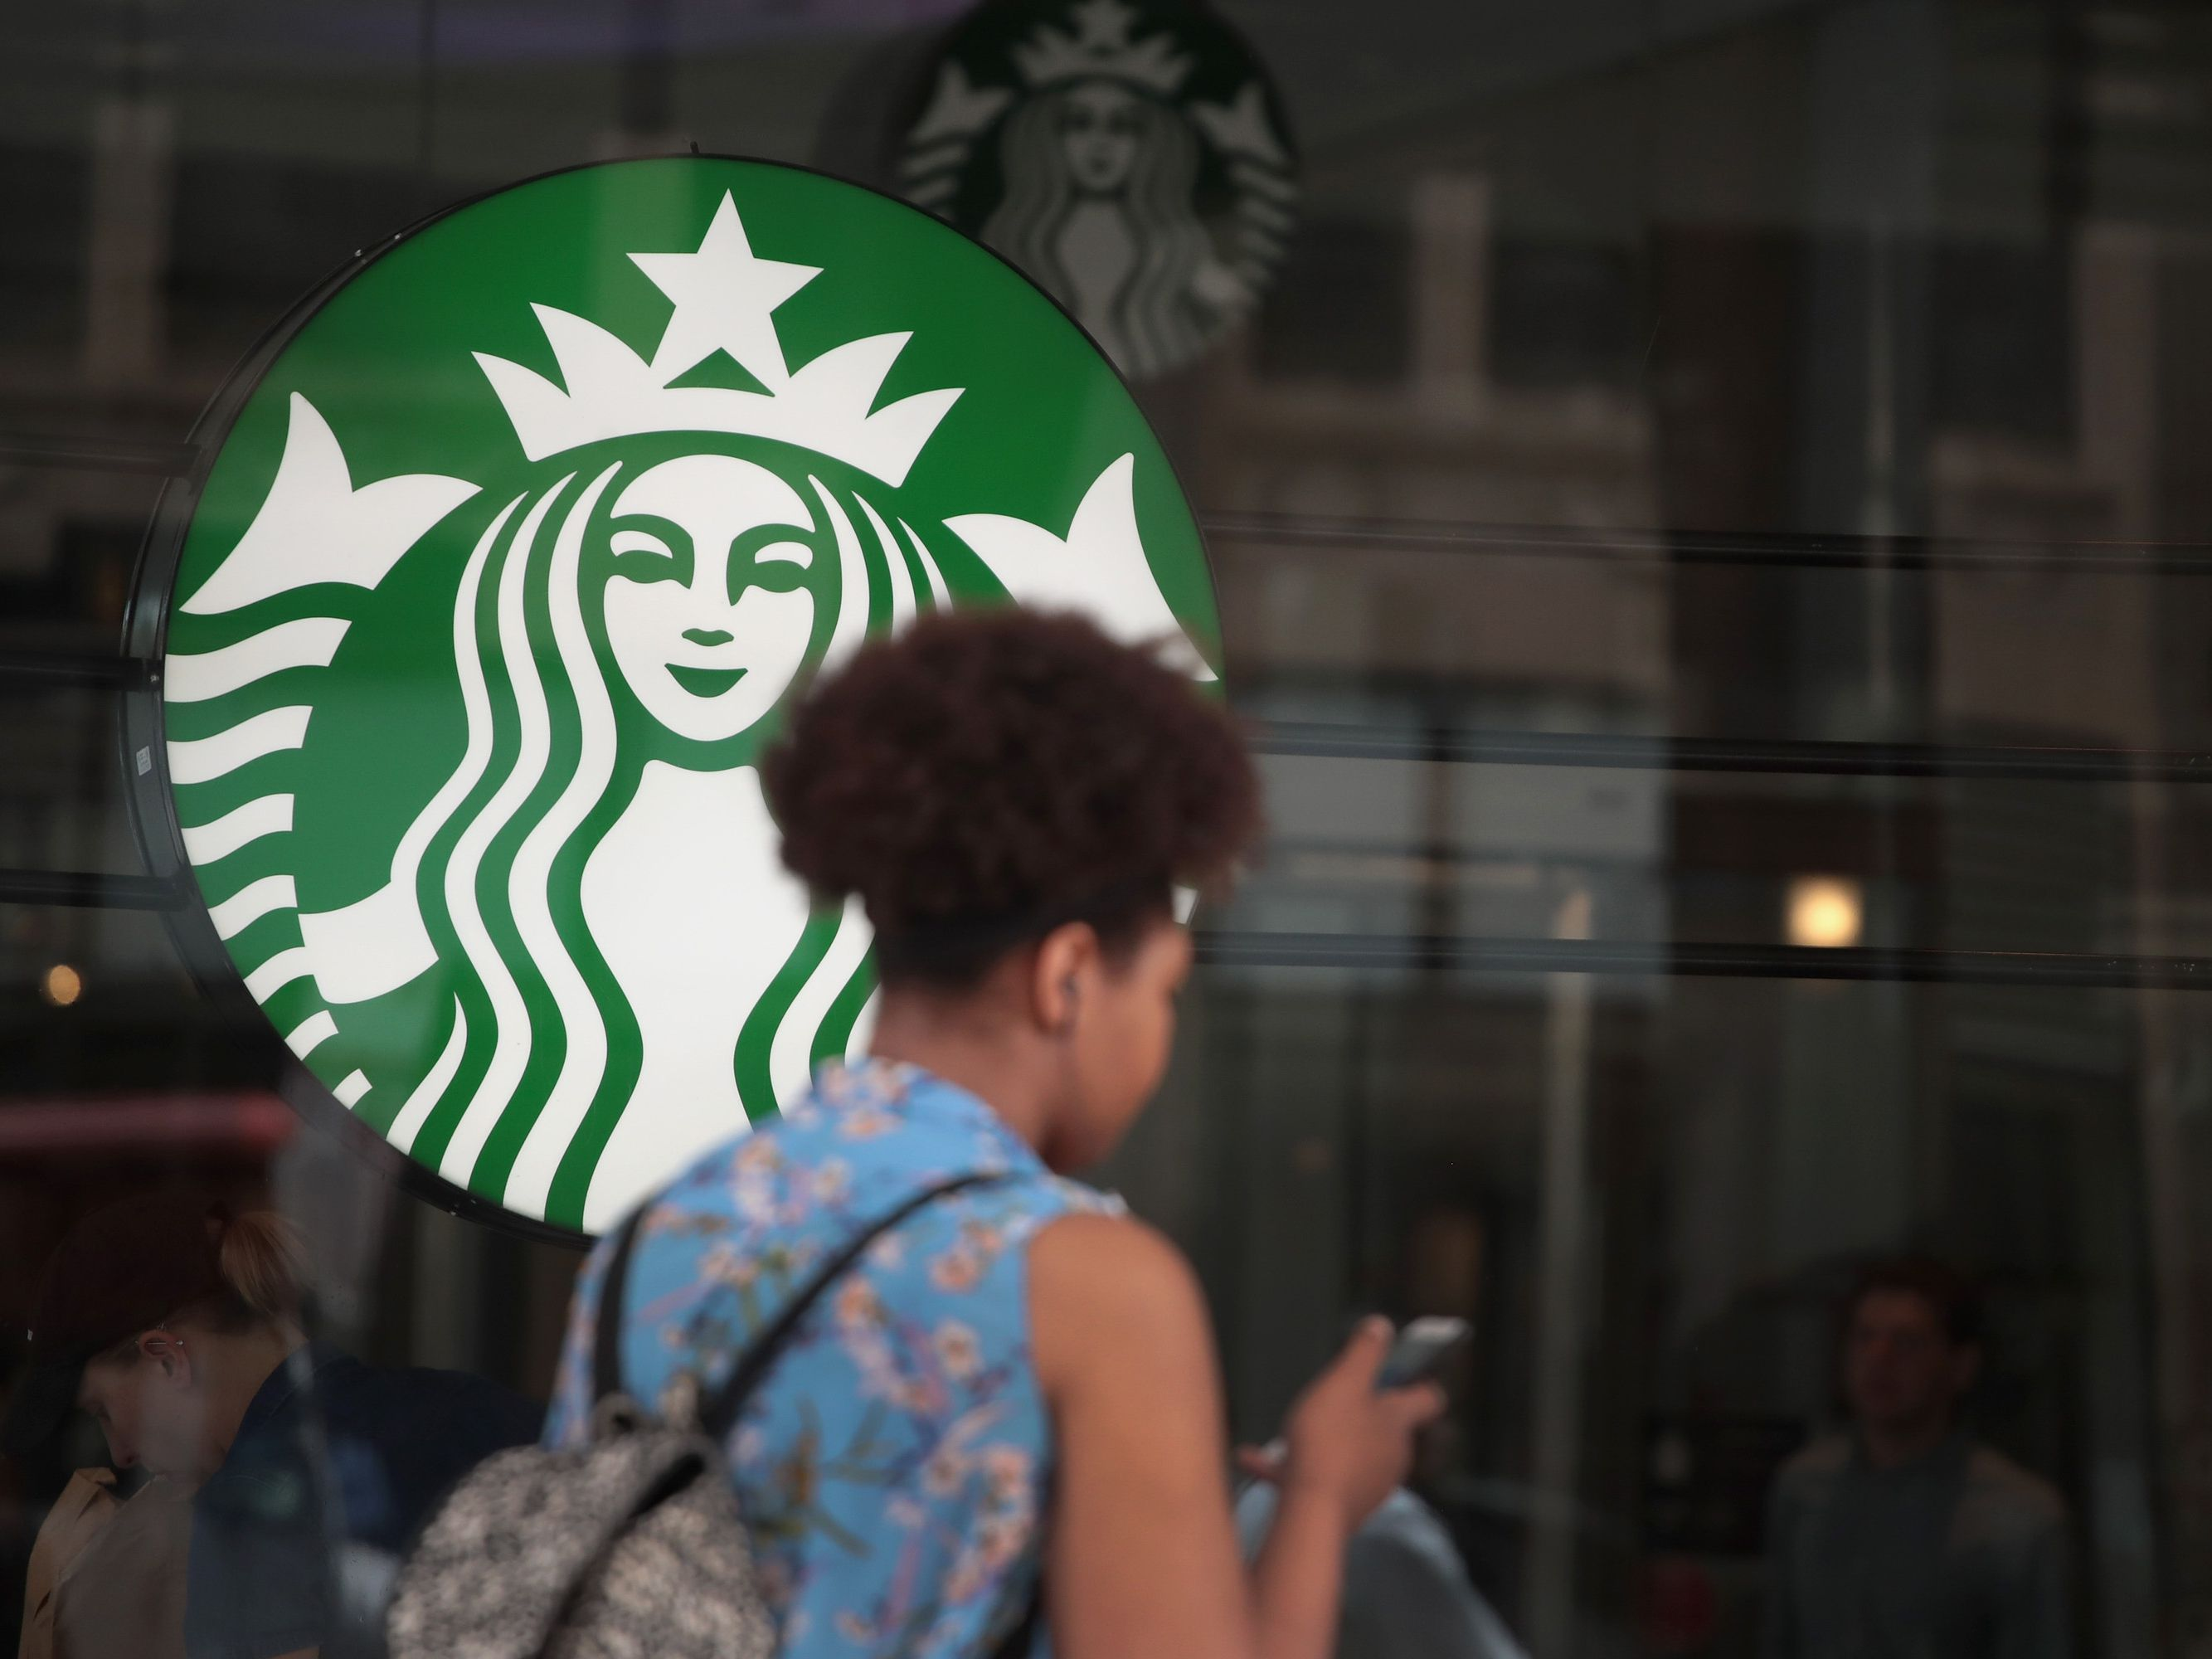 Find out What to Wear to a Job Interview at Starbucks